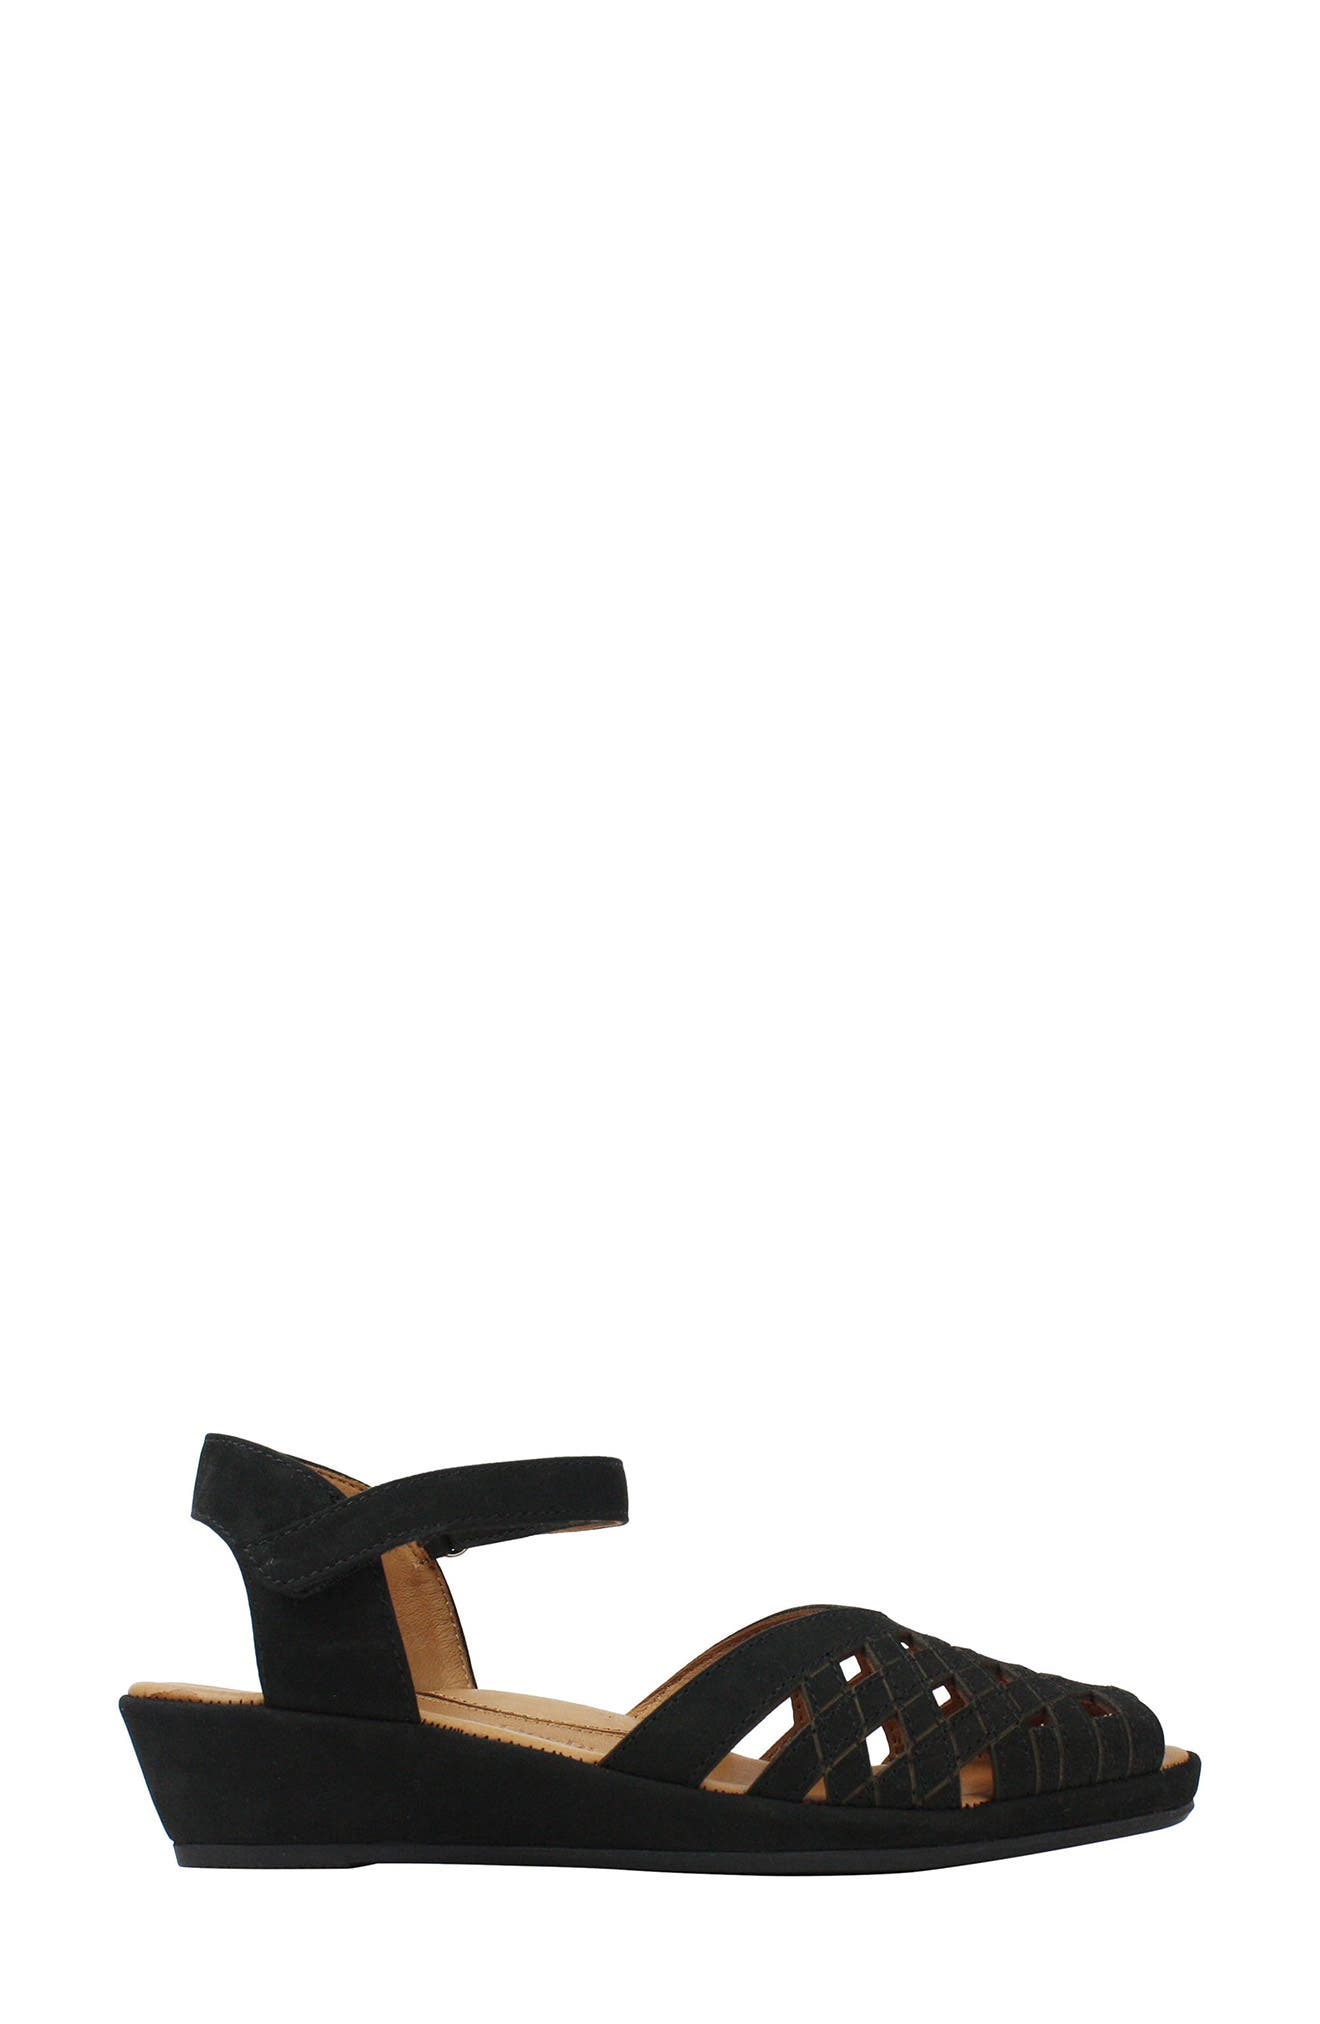 Burcie Wedge Sandal,                             Alternate thumbnail 3, color,                             BLACK NUBUCK LEATHER